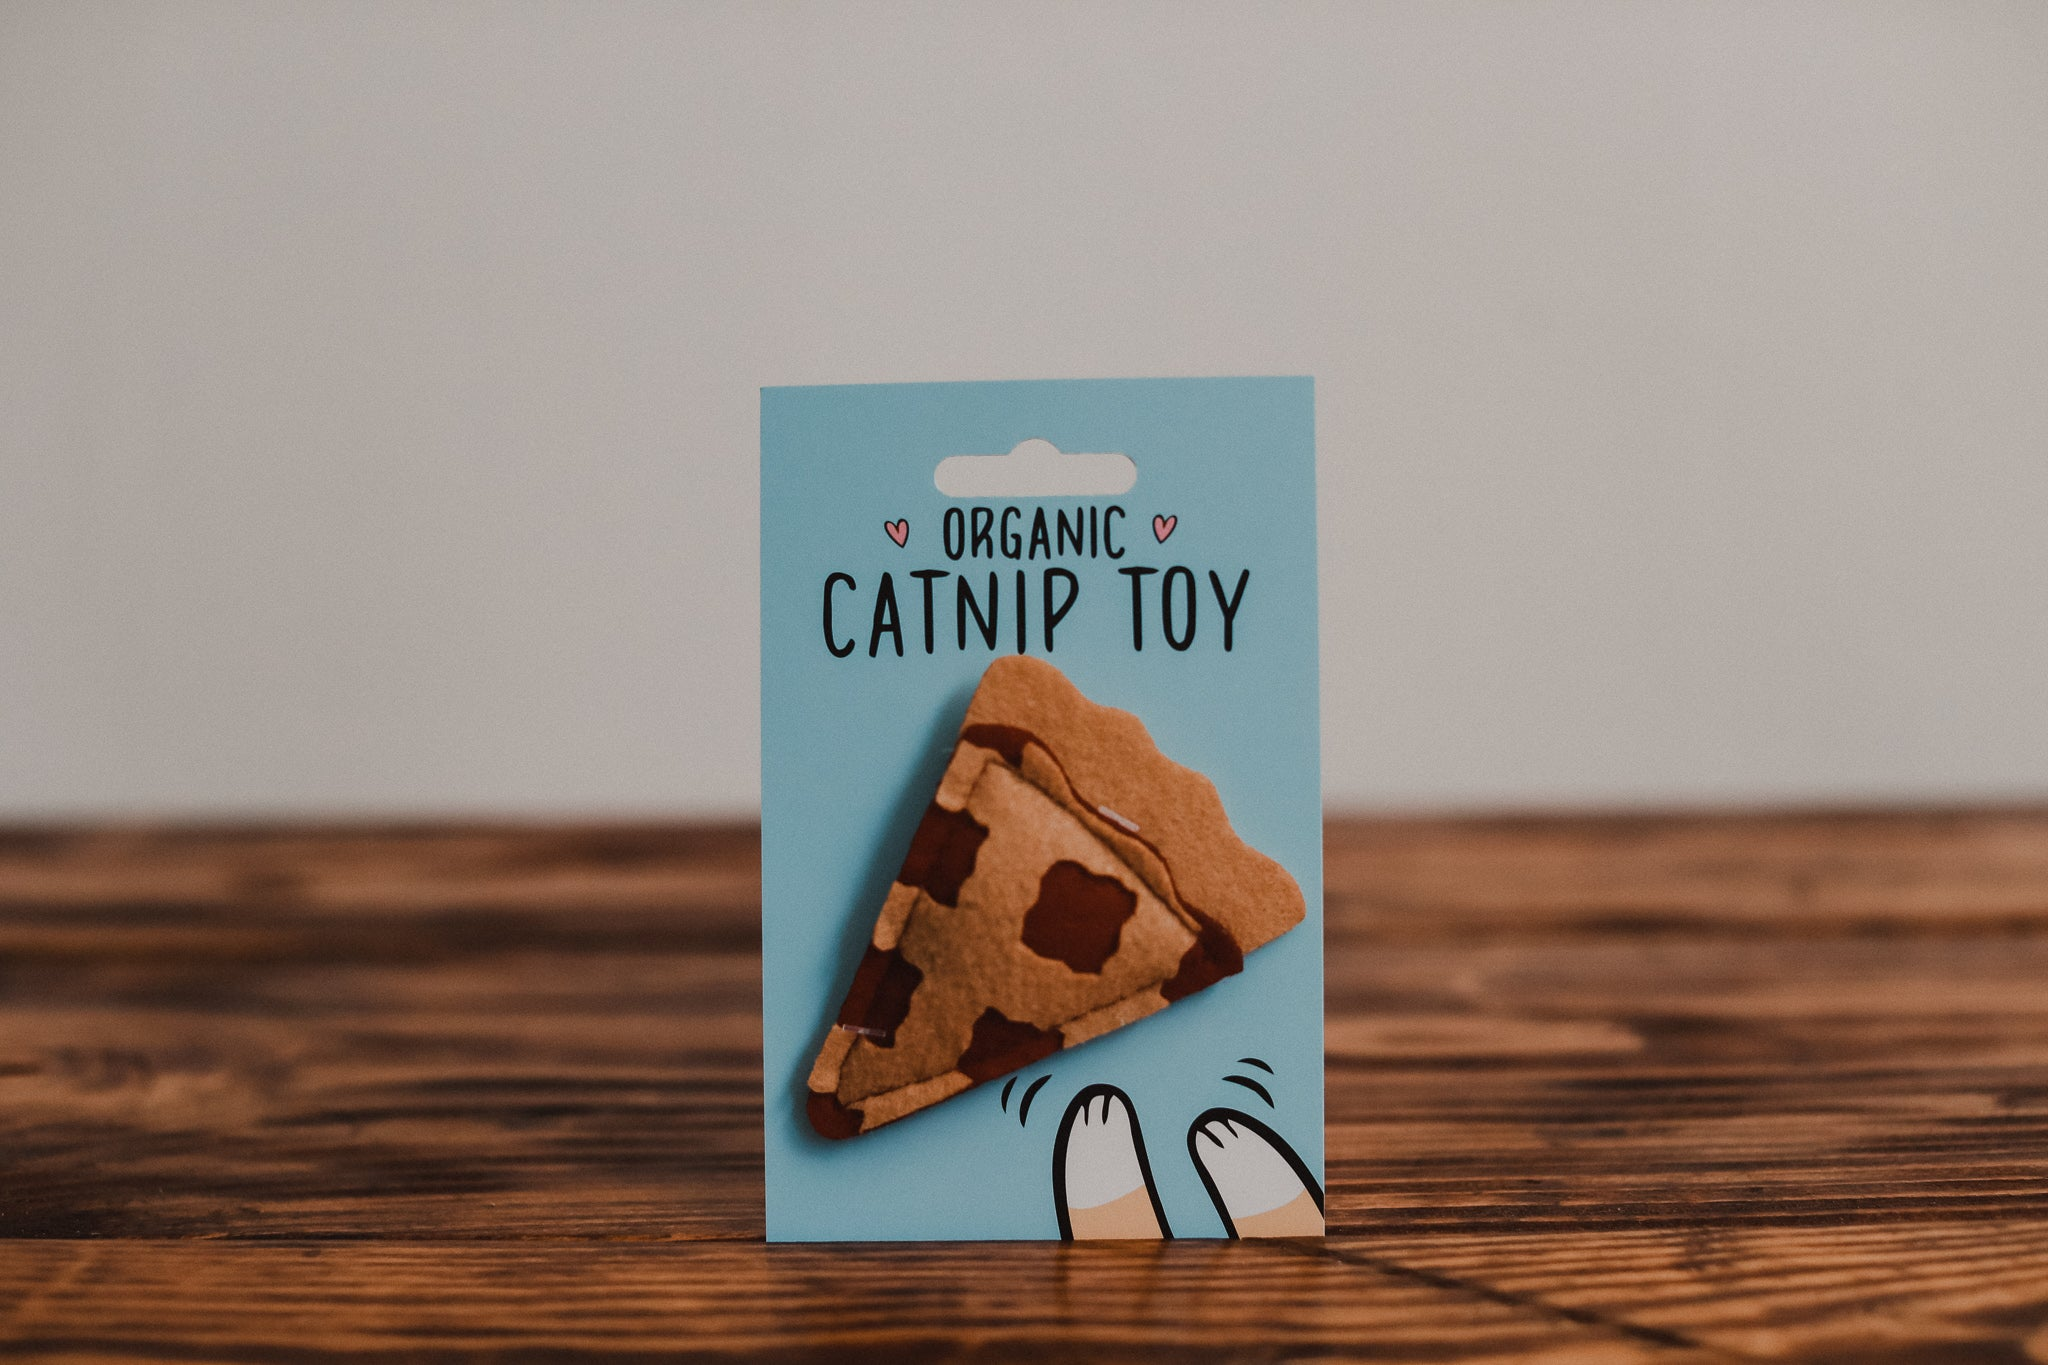 Pie Catnip Toy